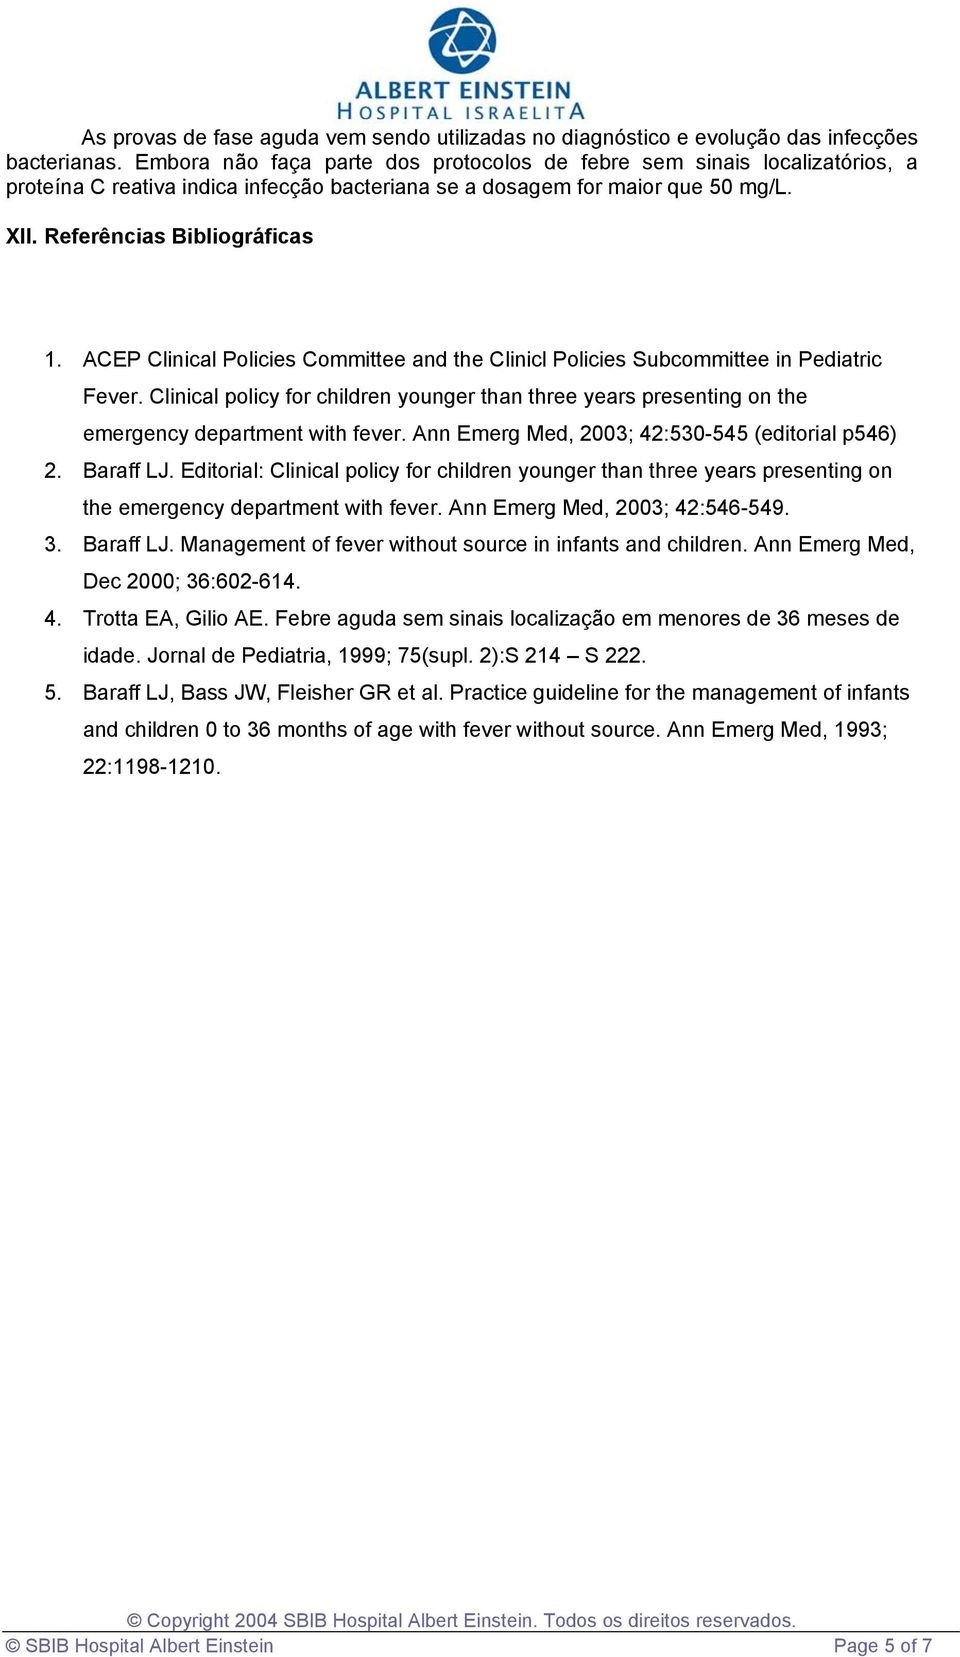 ACEP Clinical Policies Committee and the Clinicl Policies Subcommittee in Pediatric Fever. Clinical policy for children younger than three years presenting on the emergency department with fever.